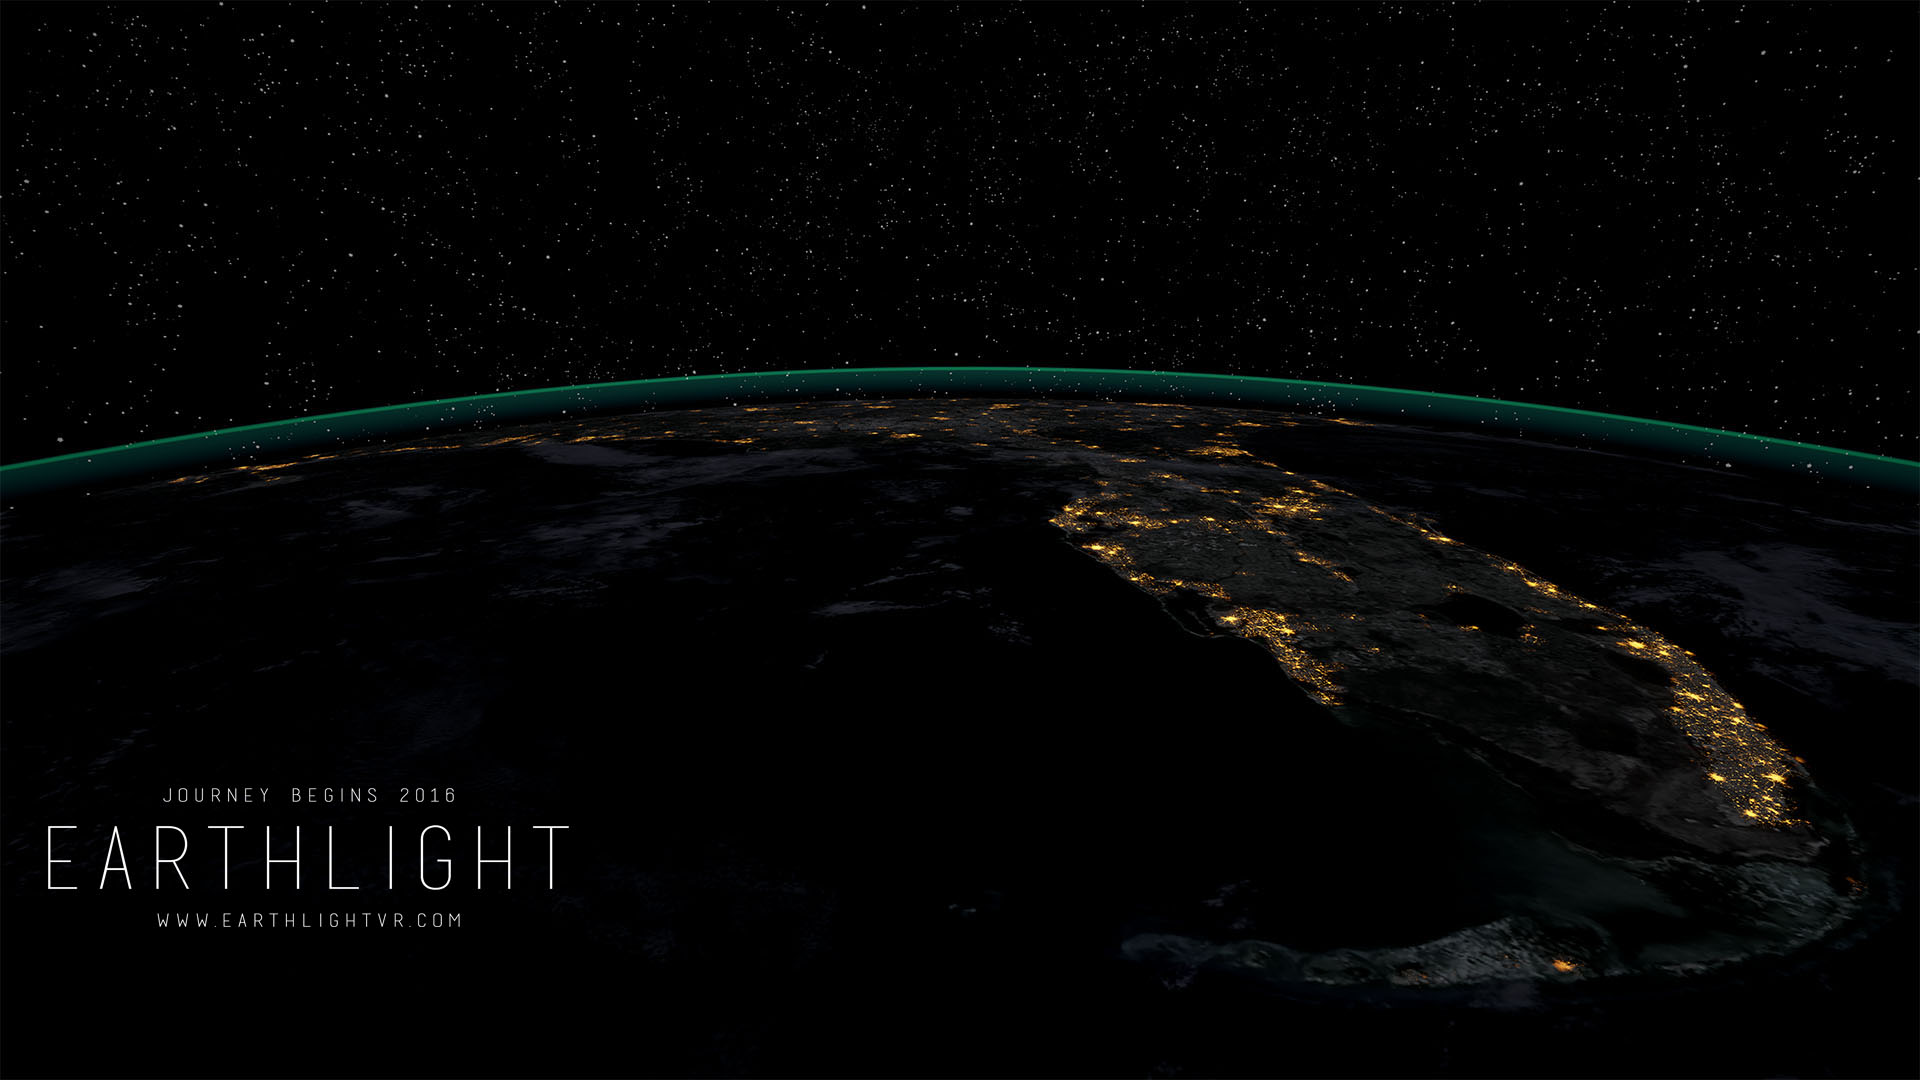 Earthlight >> Earthlight Astronaut Vr Sim Puts You On The Iss Nasa Collaborates